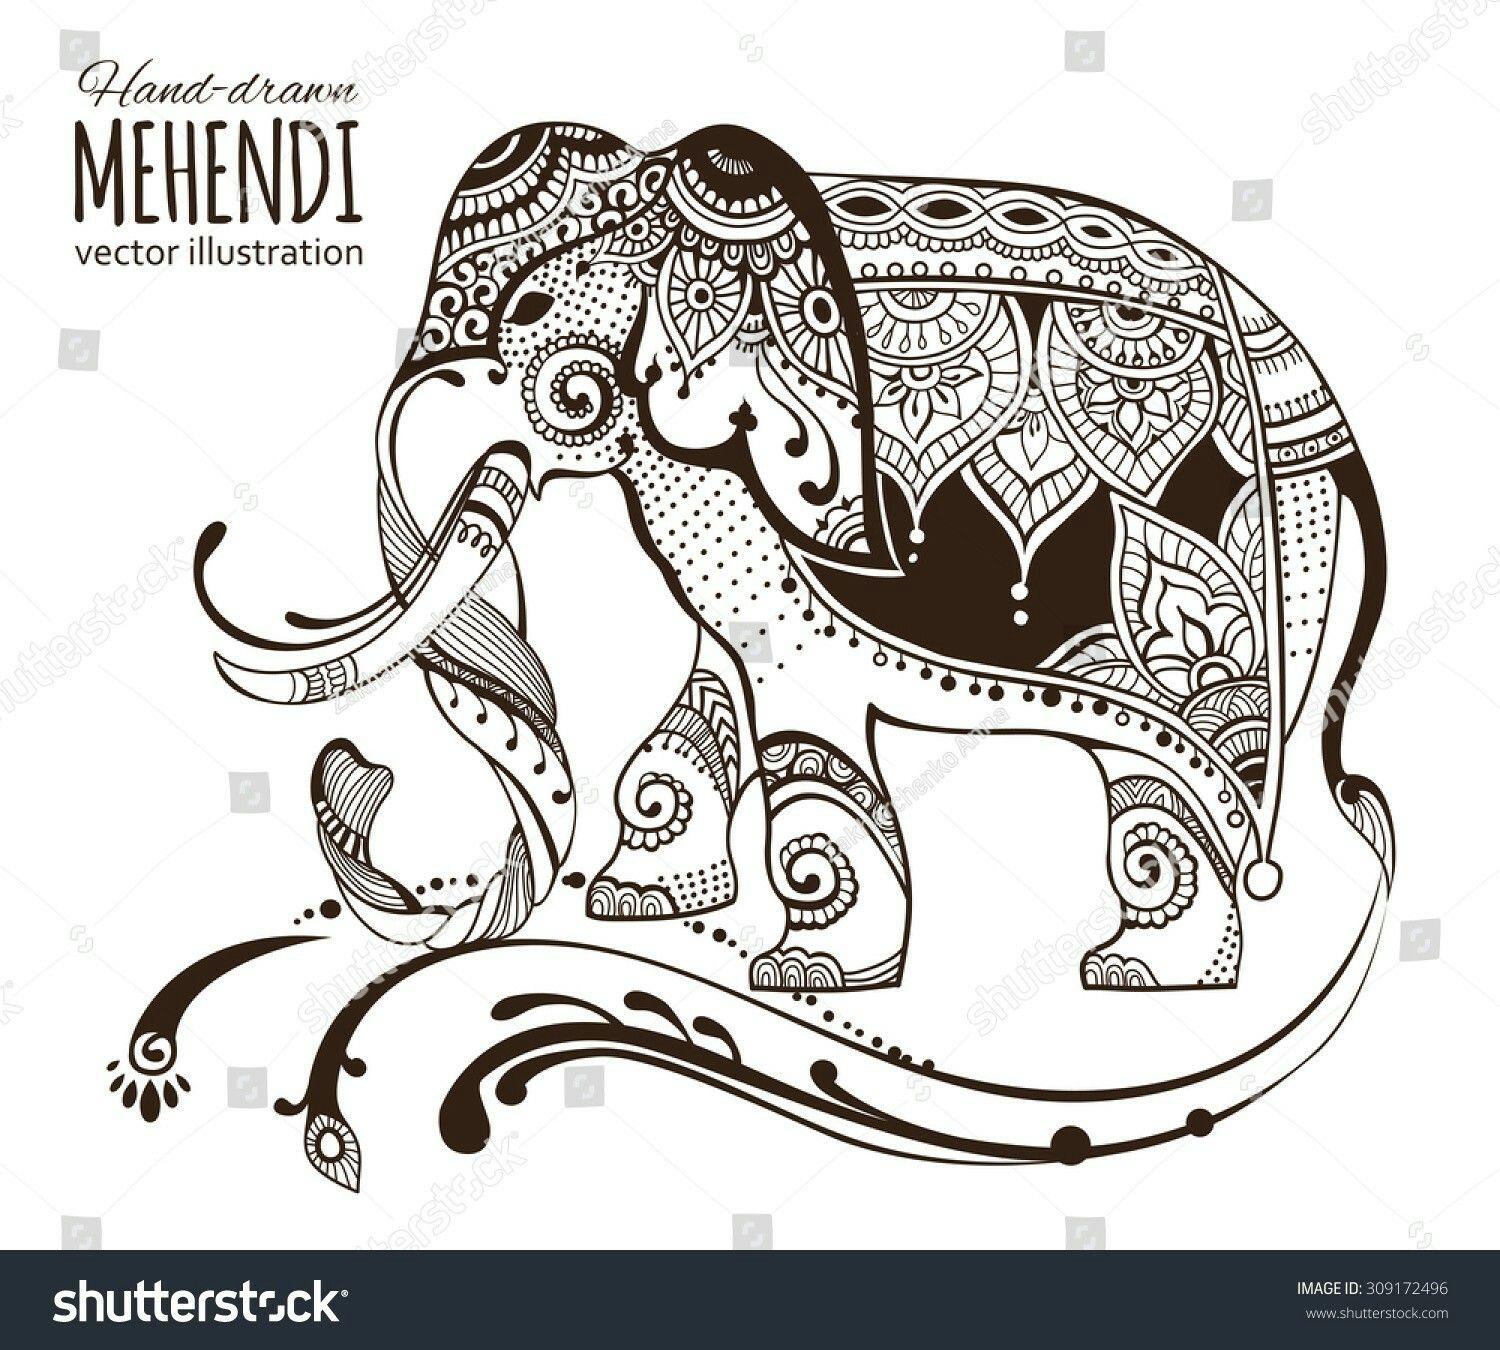 Pin by Elisabeth Quisenberry on Coloring: Elephants   Pinterest